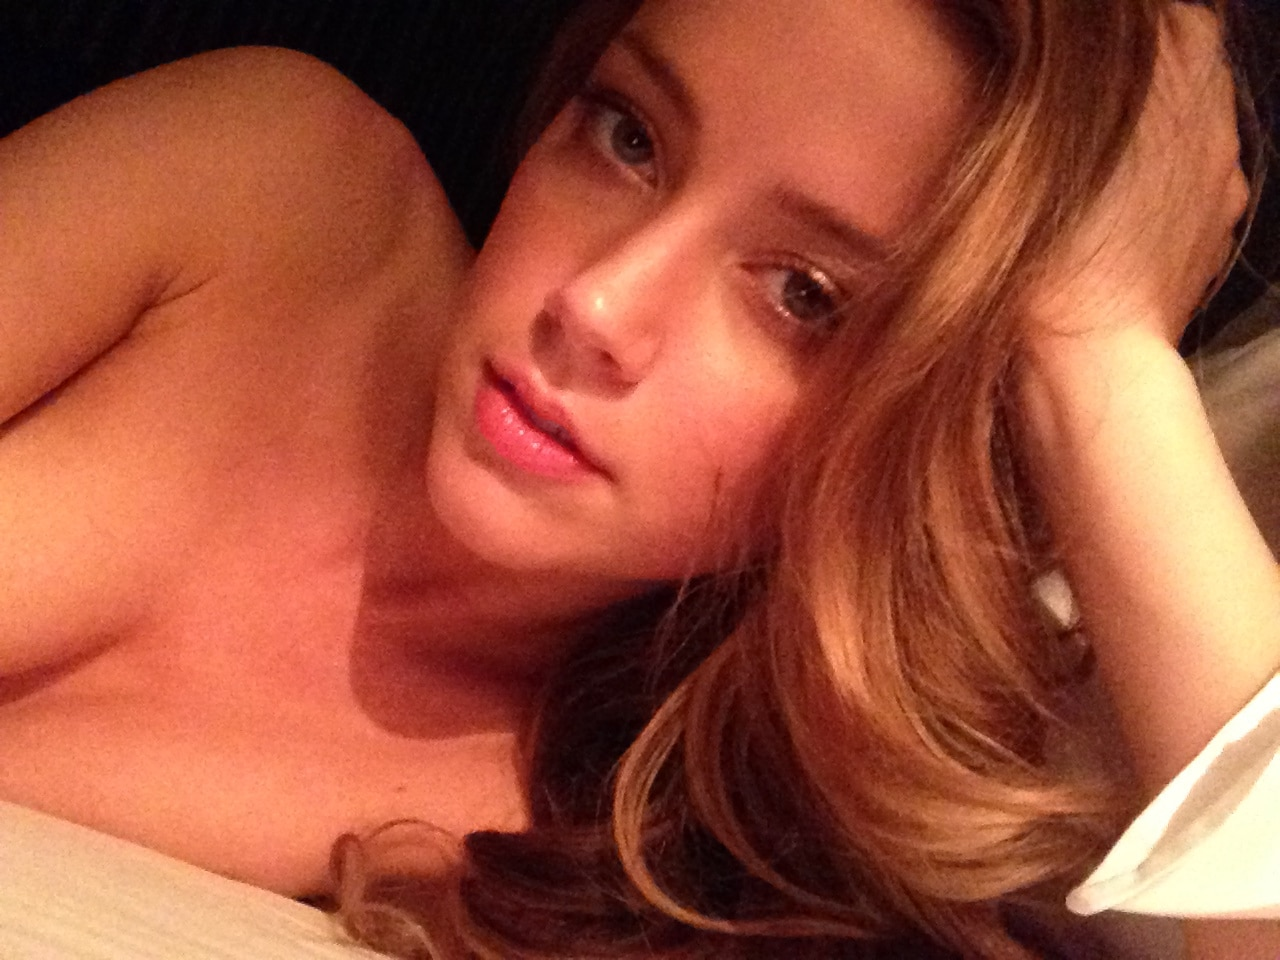 Amber Heard Naked Video full collection: amber heard nudes from the fappening (unseen!)